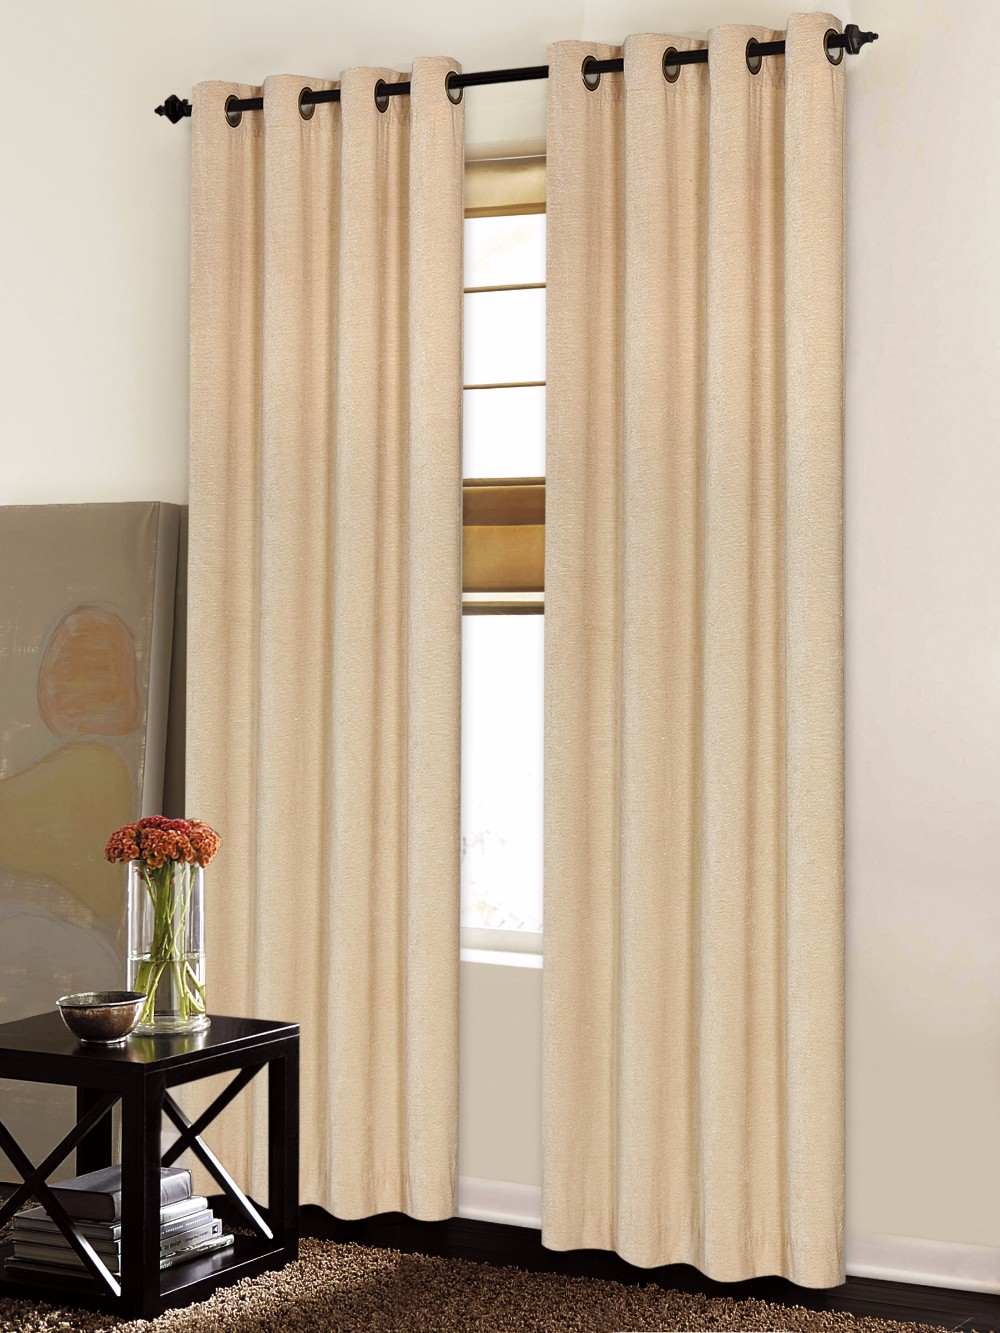 design in carpets by curtains office hotel best of dubai for top